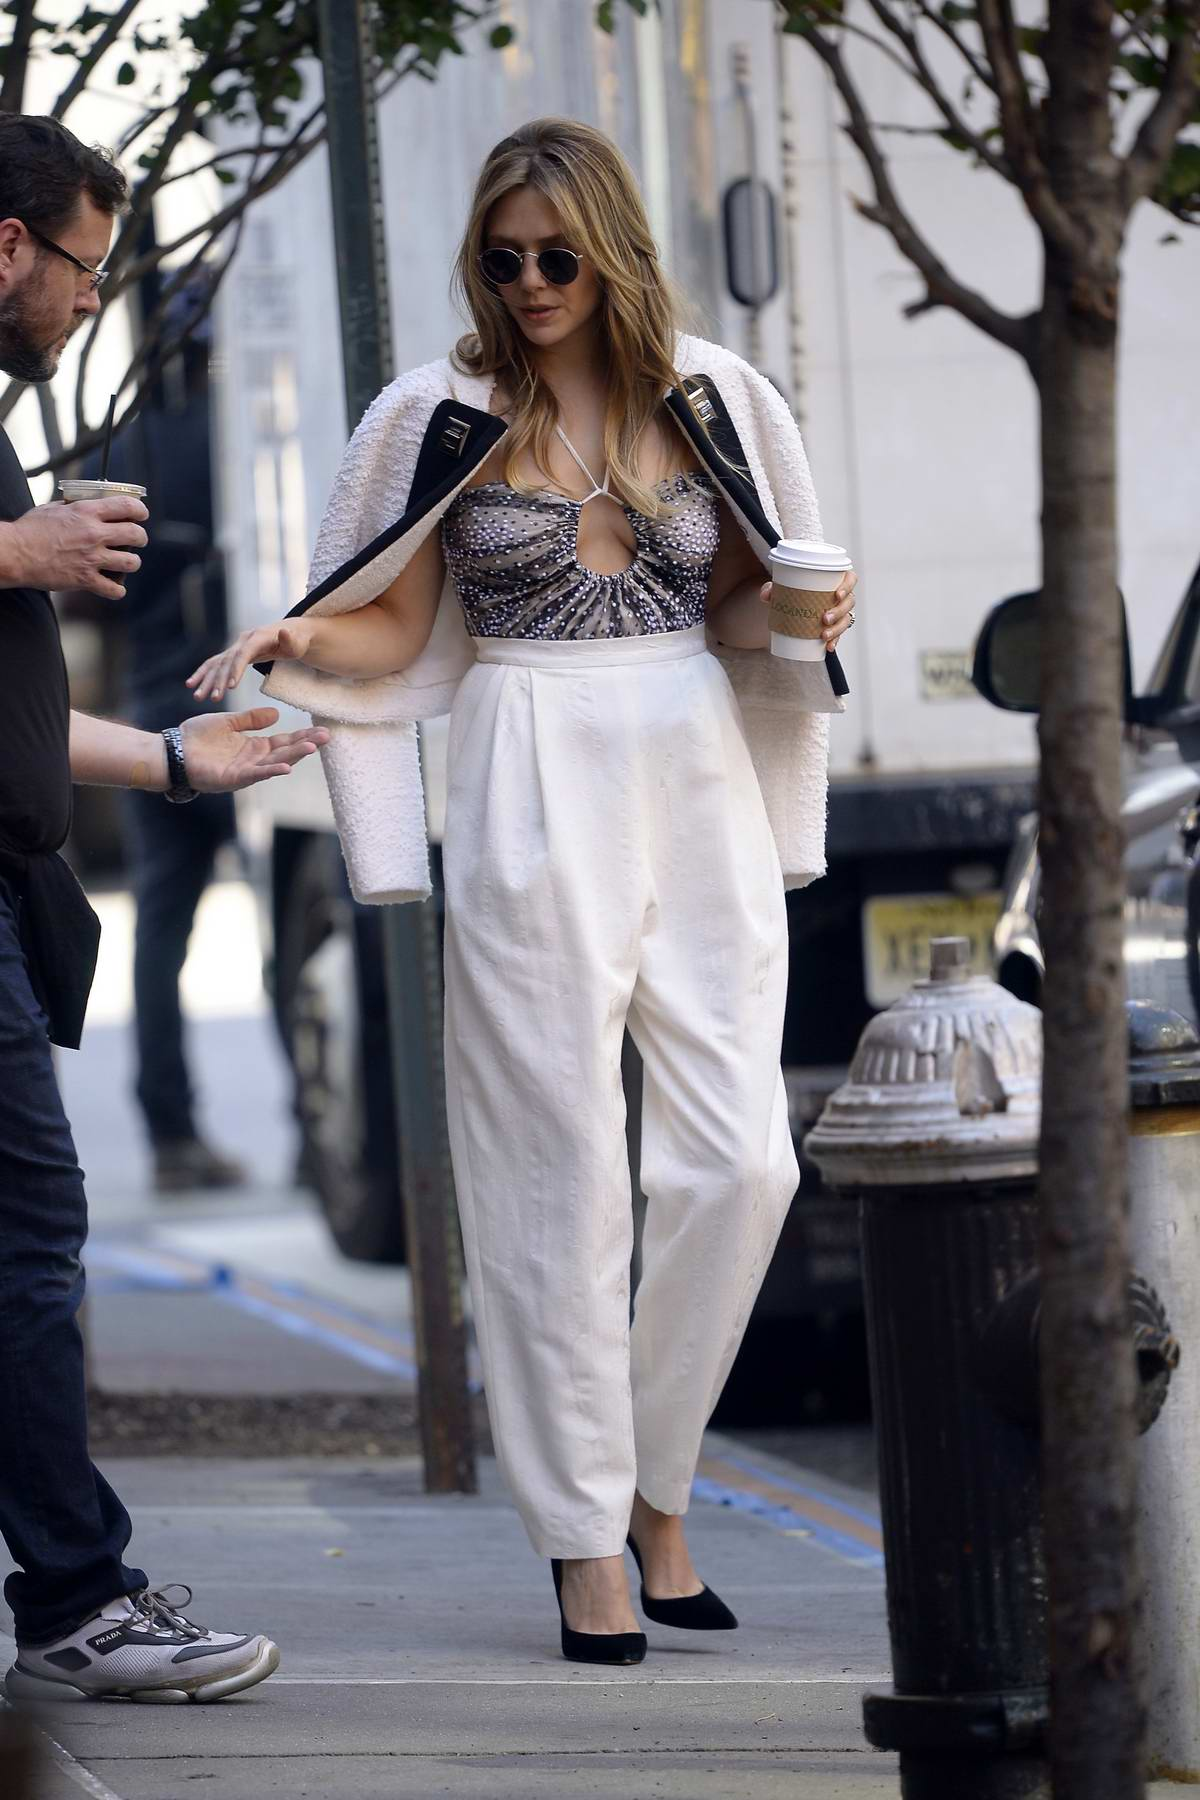 Elizabeth Olsen looks stylish in a spaghetti top and white pants while out in New York City